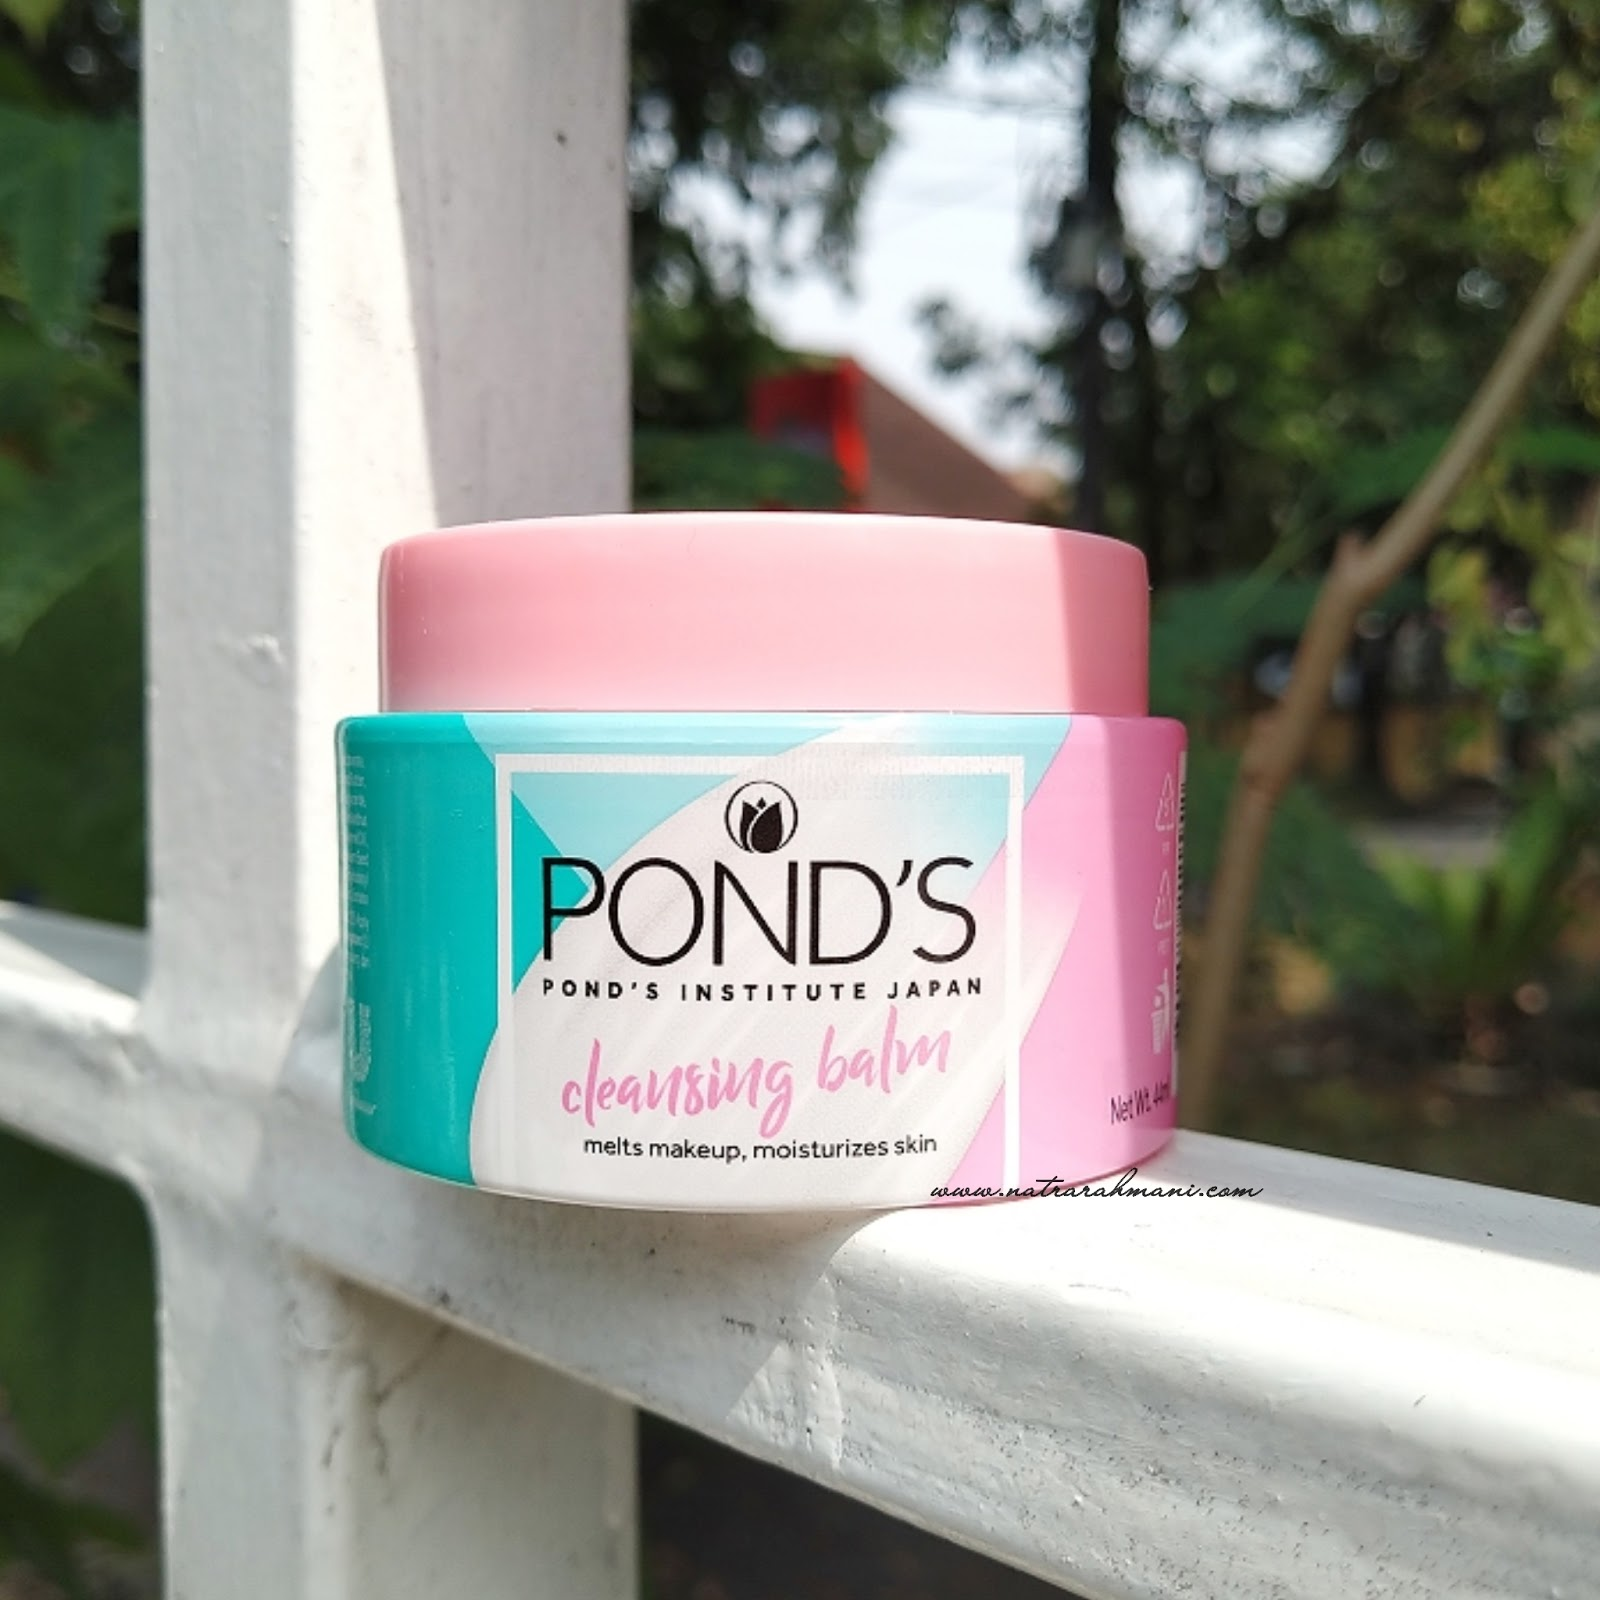 review-ponds-cleansing-balm-indonesia-natrarahmani